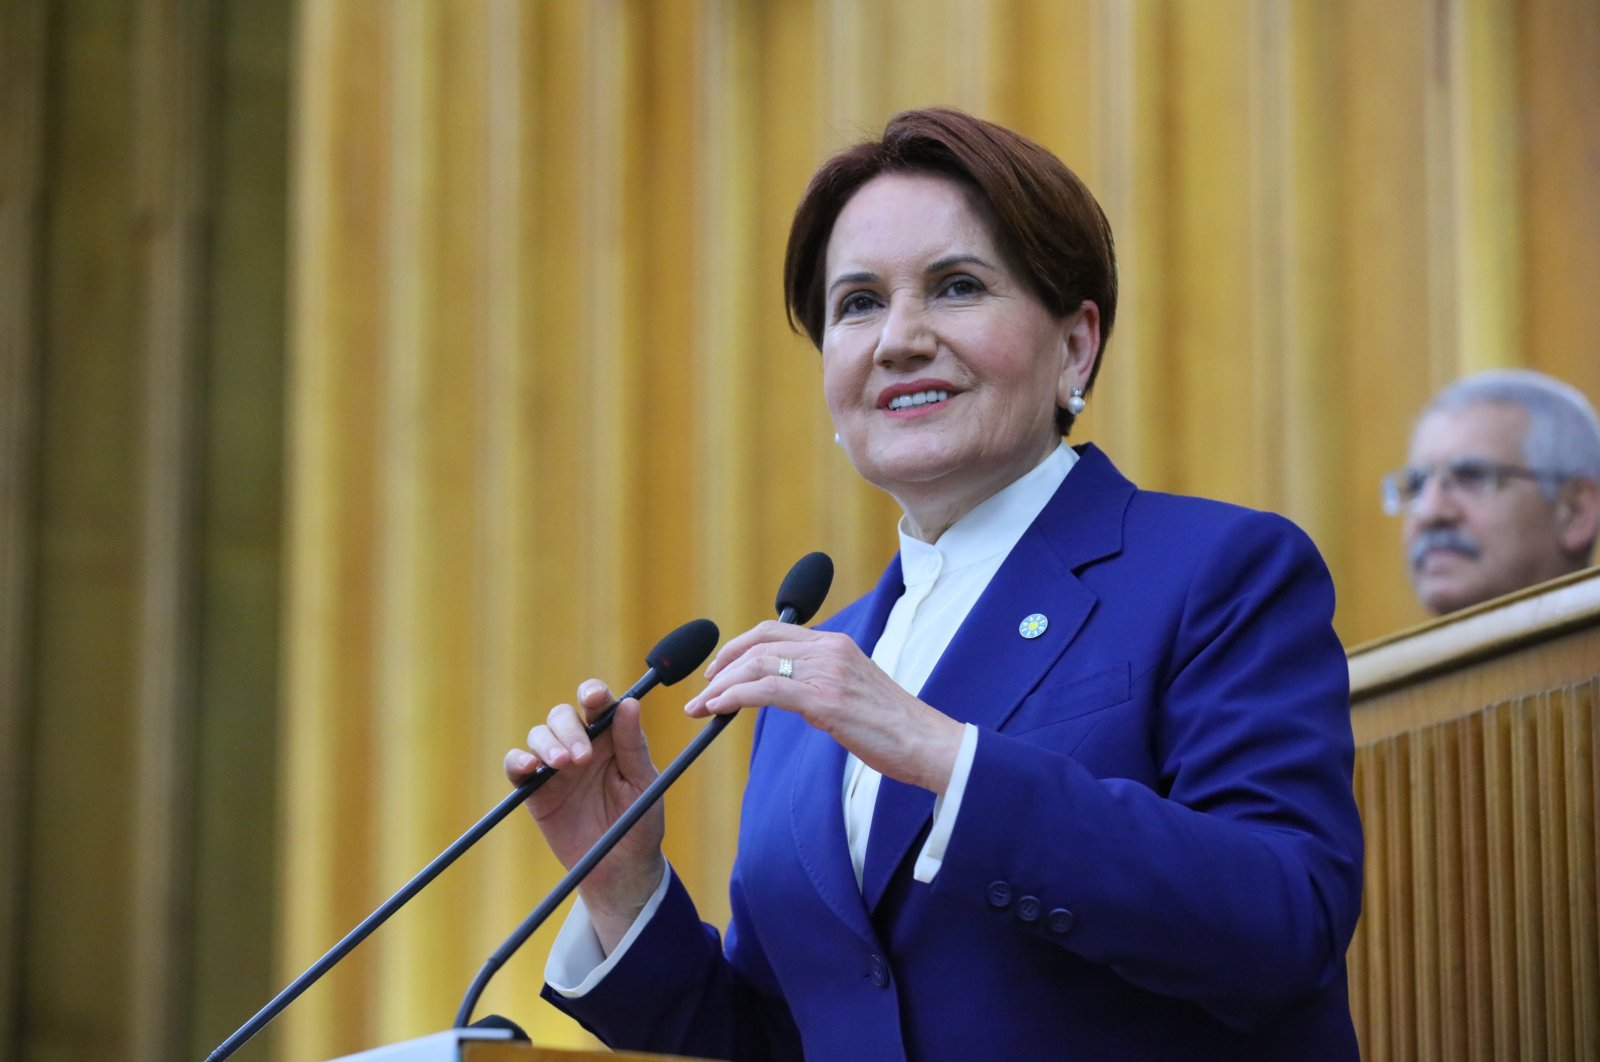 Head of İP Meral Akşener speaks at her party's group meeting in the parliament, March 10, 2020. (PHOTO BY ALİ EKEYILMAZ)